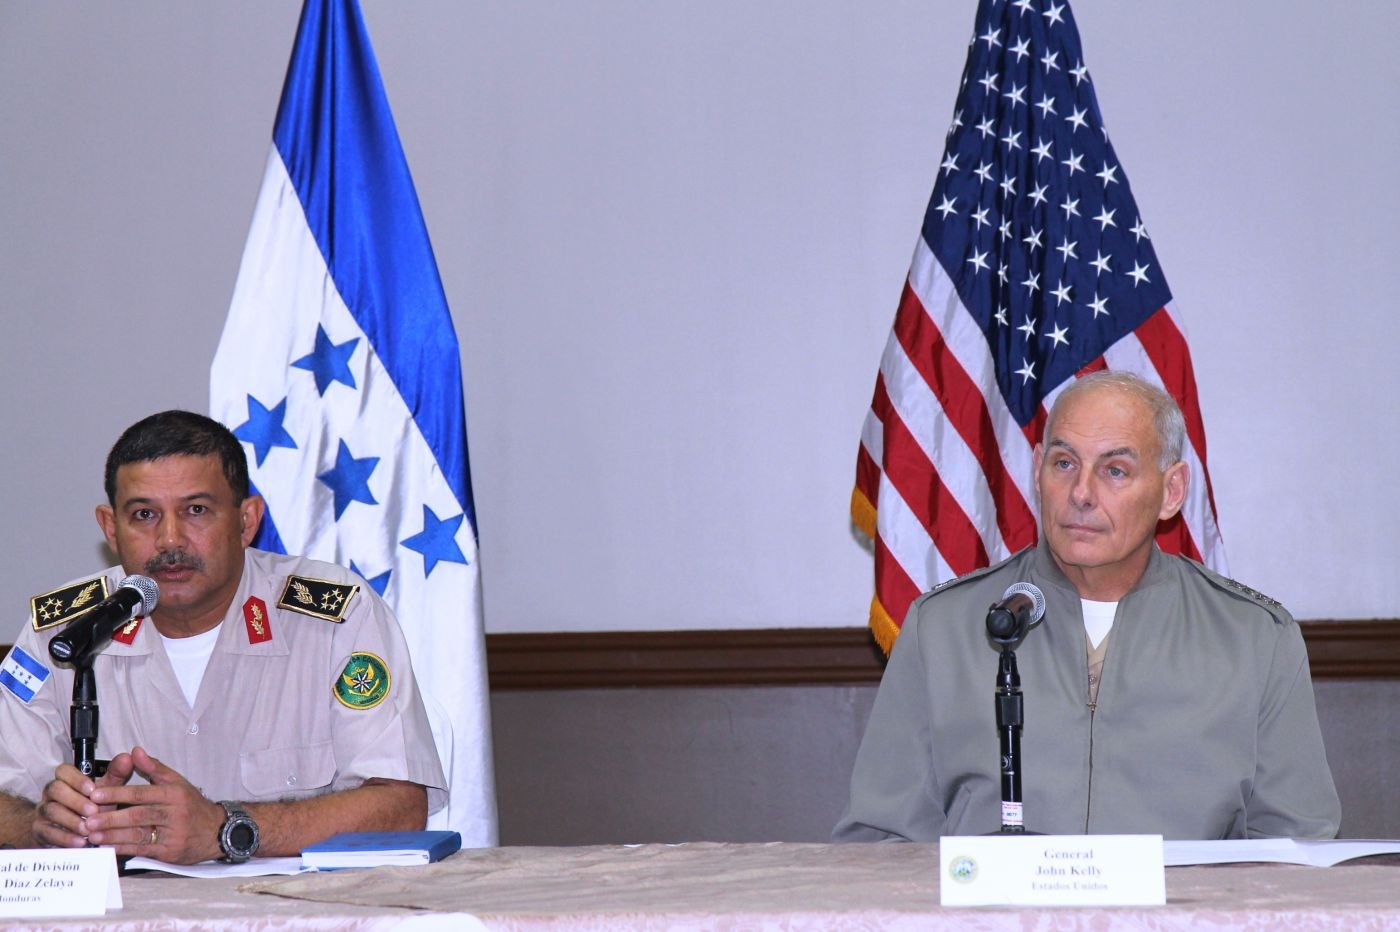 Military Leaders from Honduras and the U.S. Conclude CENTSEC in Tegucigalpa